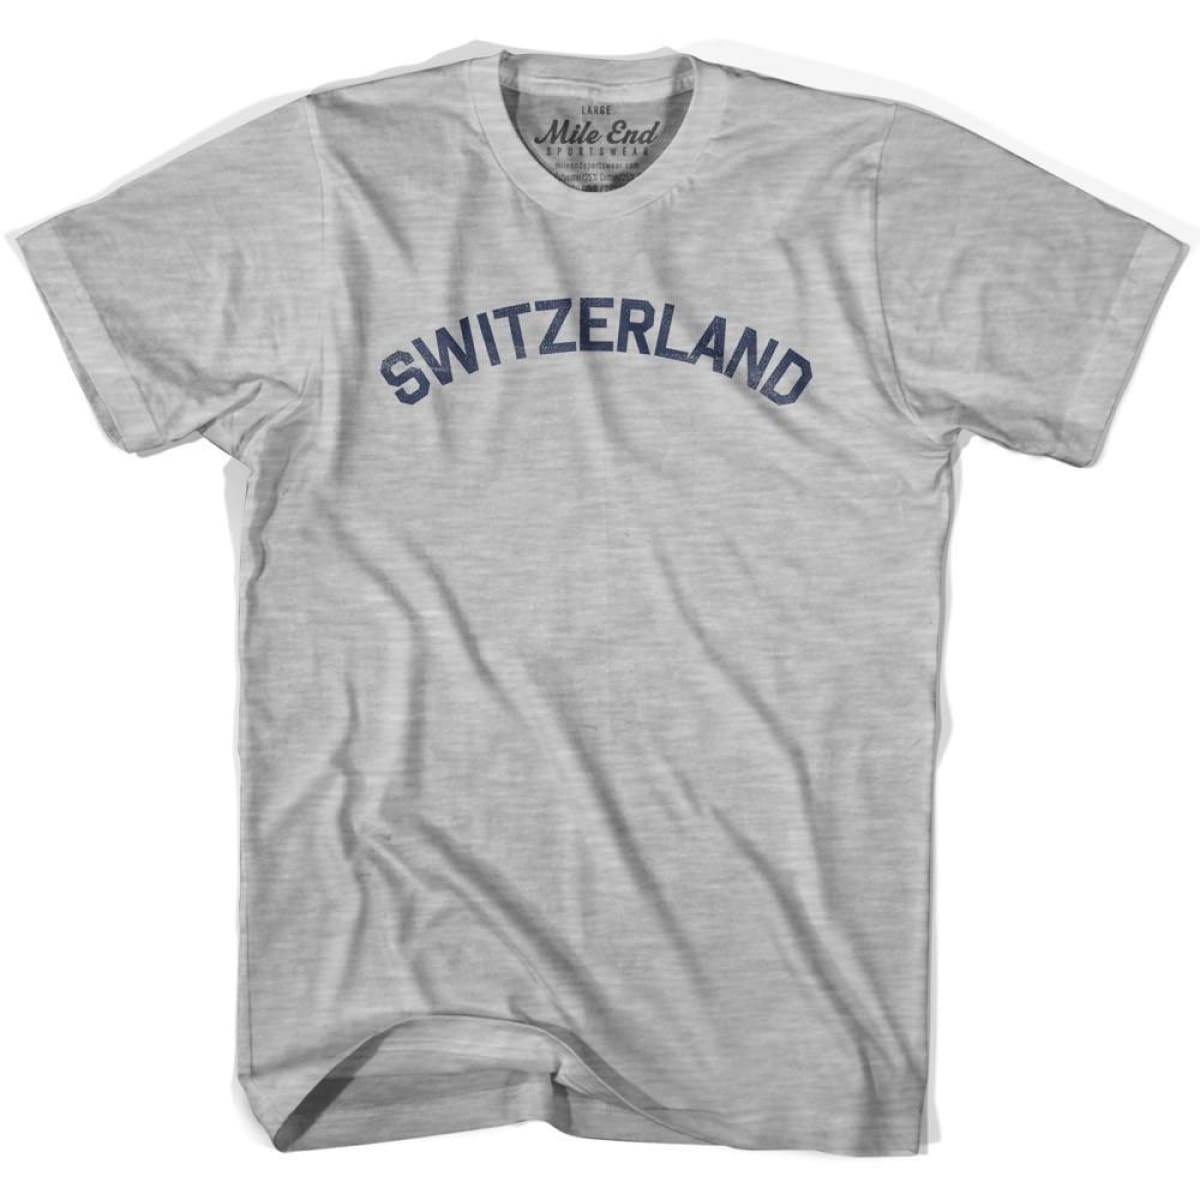 Switzerland City Vintage T-shirt - Grey Heather / Youth X-Small - Mile End City